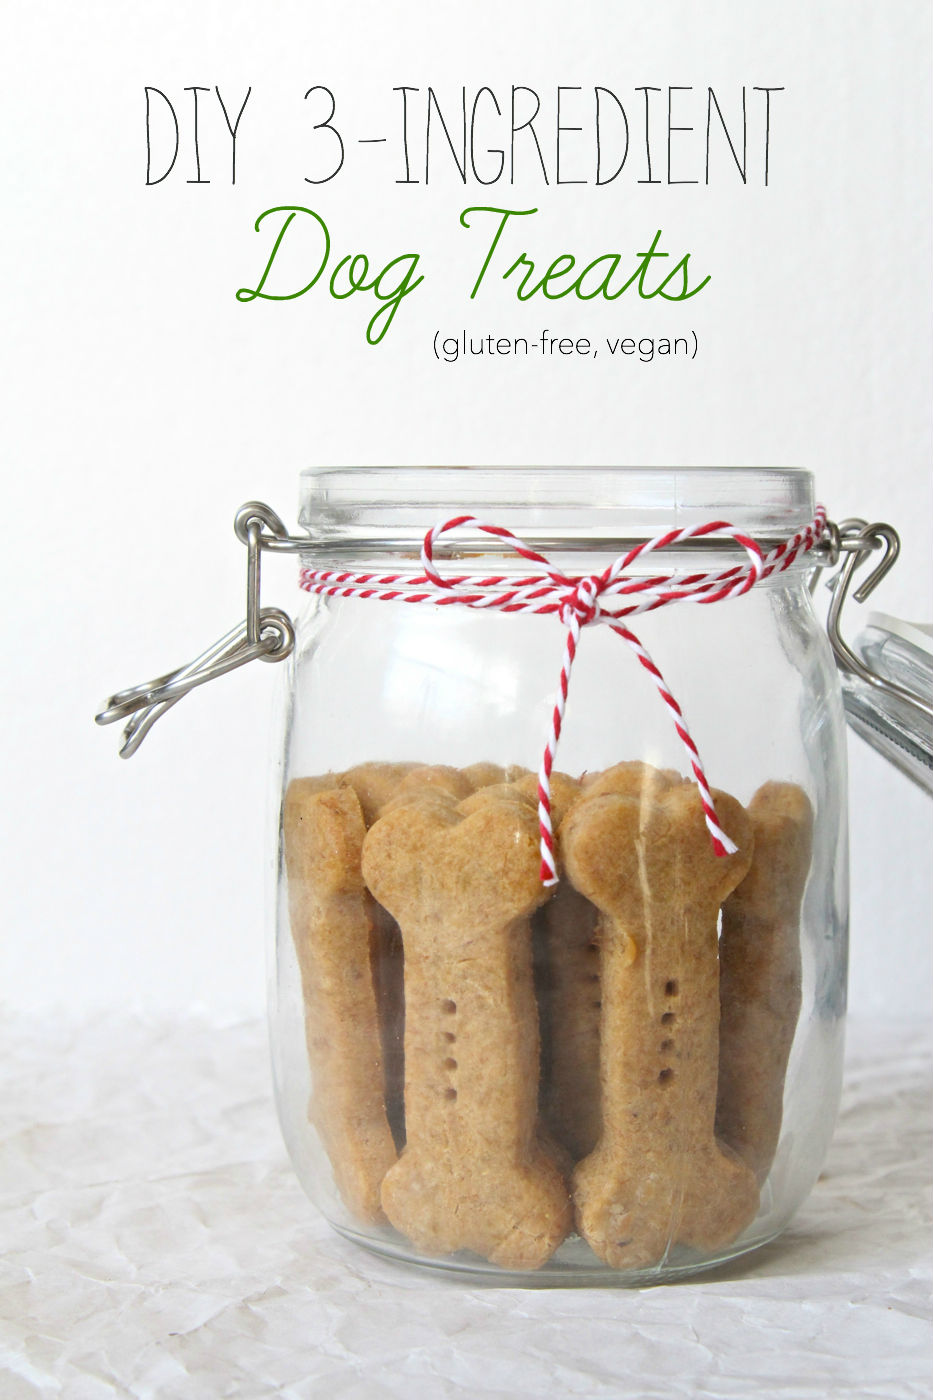 Three Ingredient Vegan, Gluten Free Dog Treats